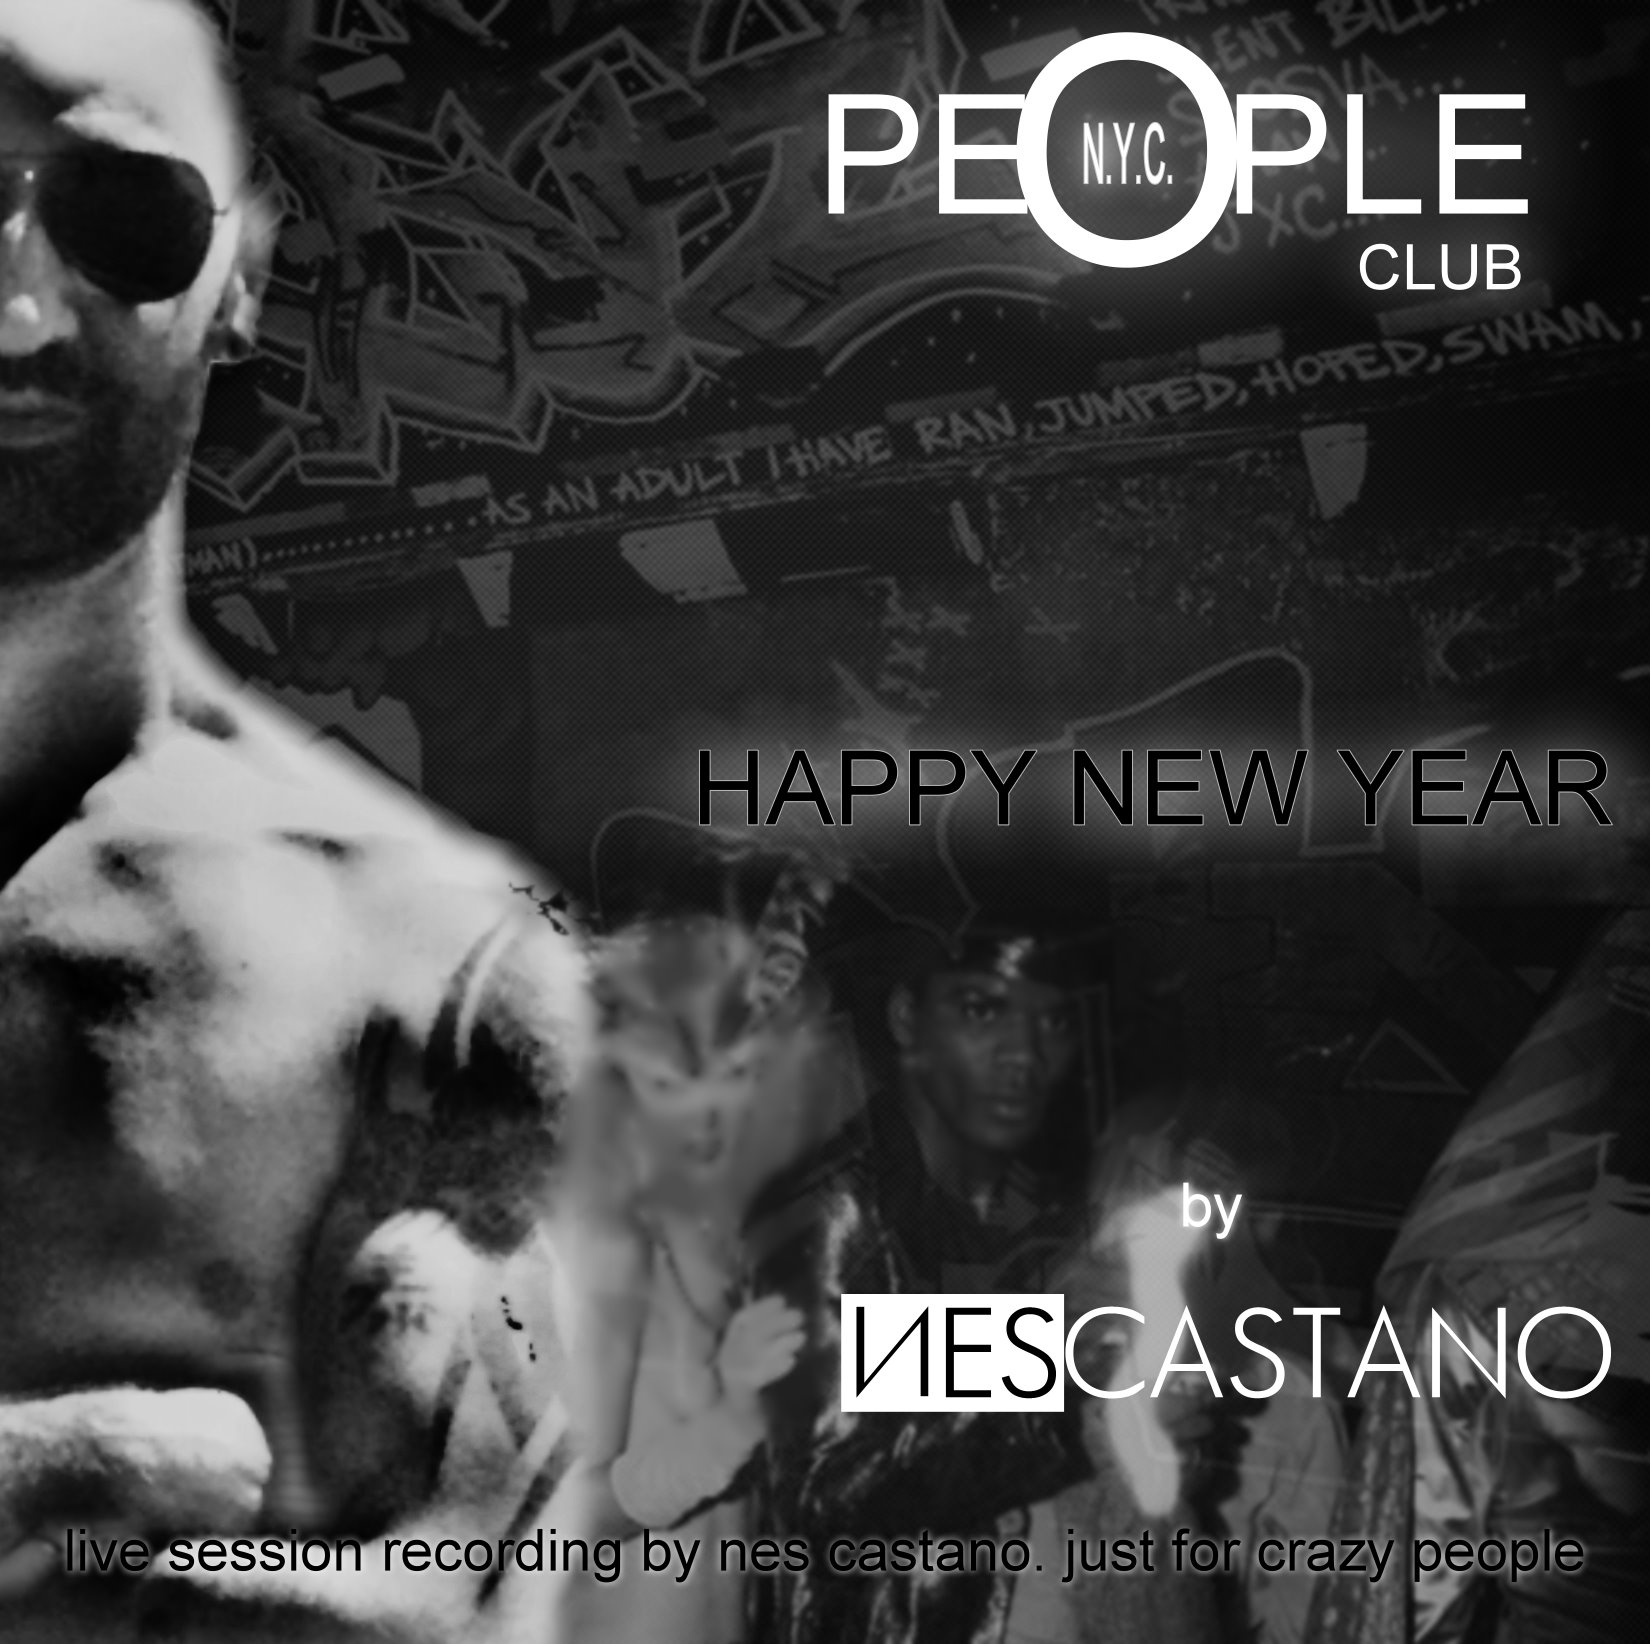 PEOLPLE NYC CLUB